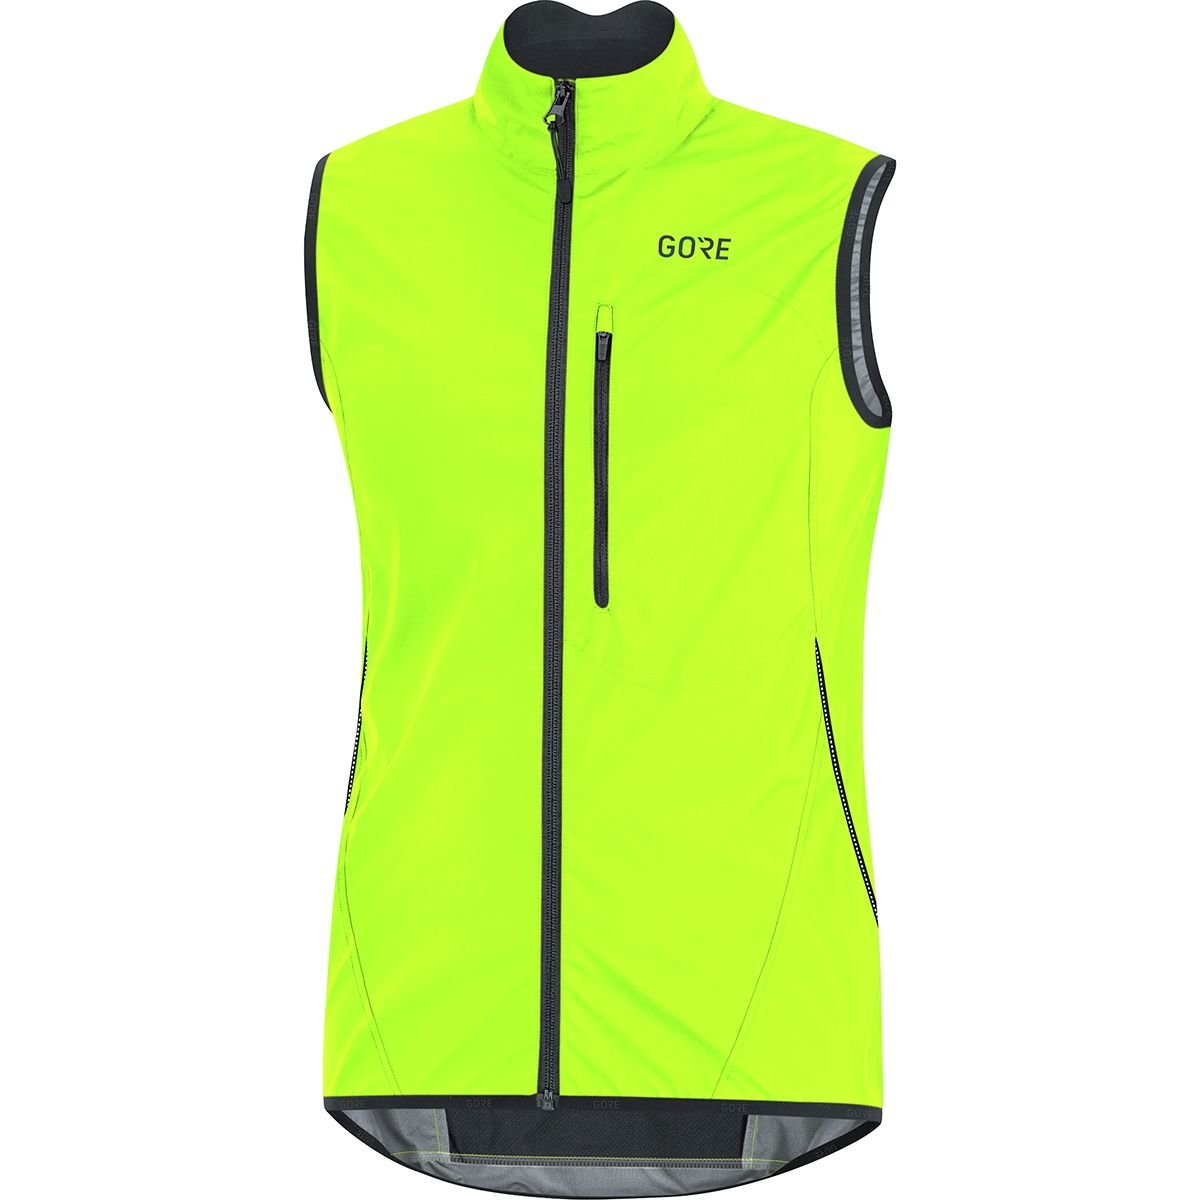 GORE Wear C3 Men's Vest GORE WINDSTOPPER, XXL, Neon Yellow/Black by GORE WEAR